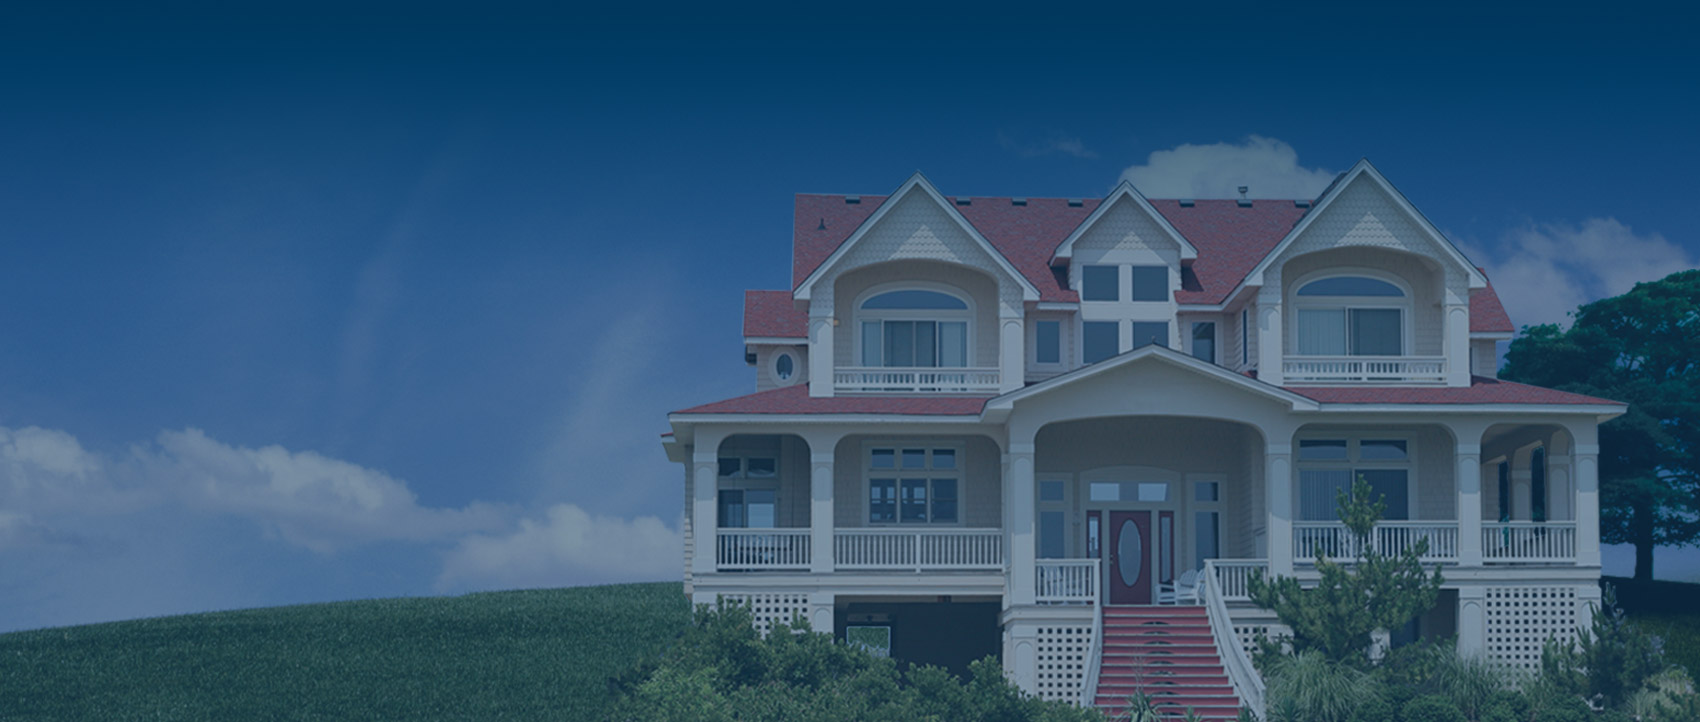 Certified Pre-Owned Home Inspections in St Louis